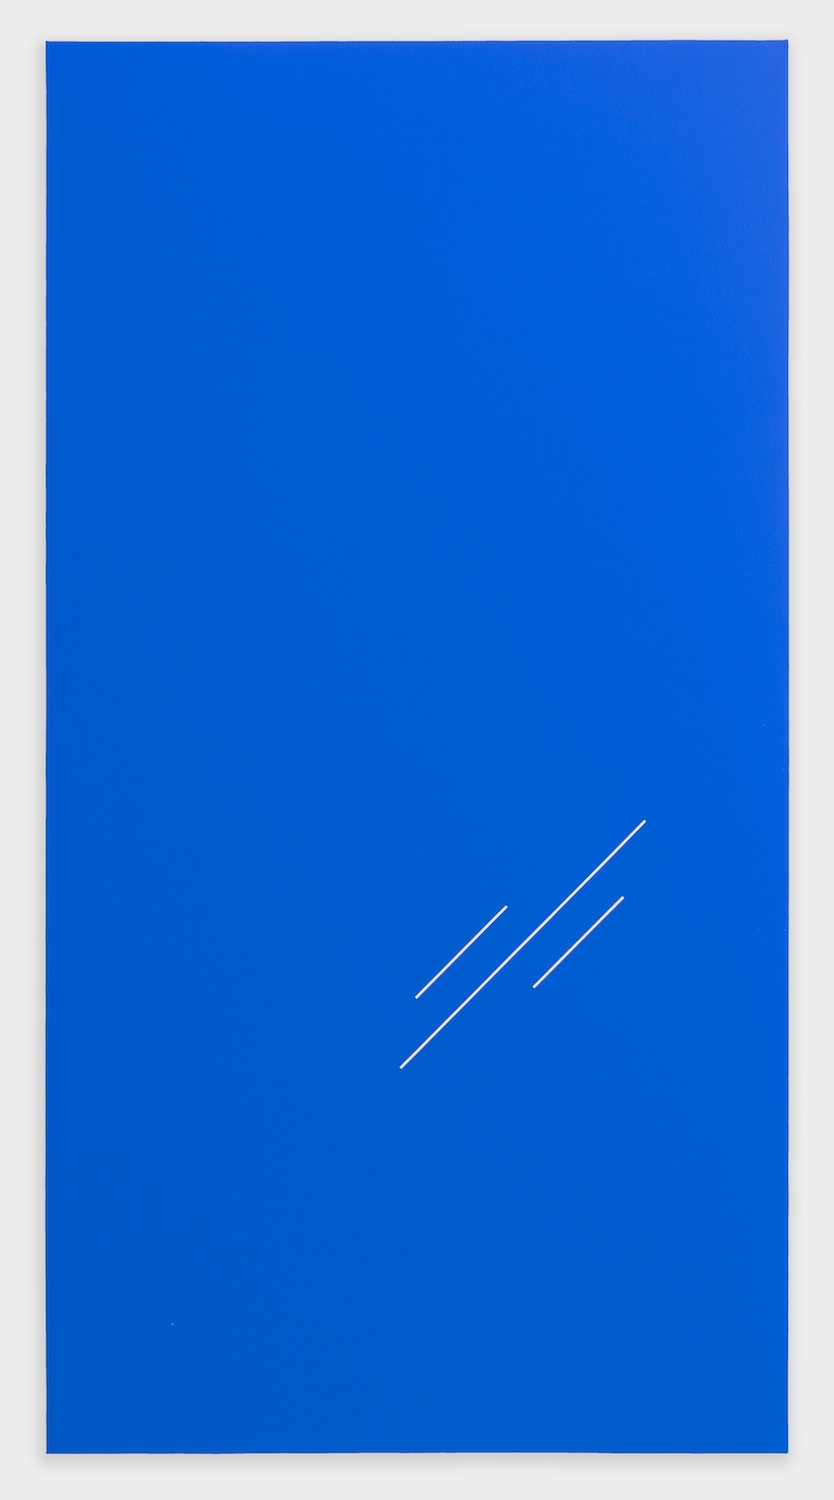 Paul Cowan  BCEAUSE THE SKY IS BULE  2013 Chroma-key Blue Paint On Canvas 78h x 41w in PC079